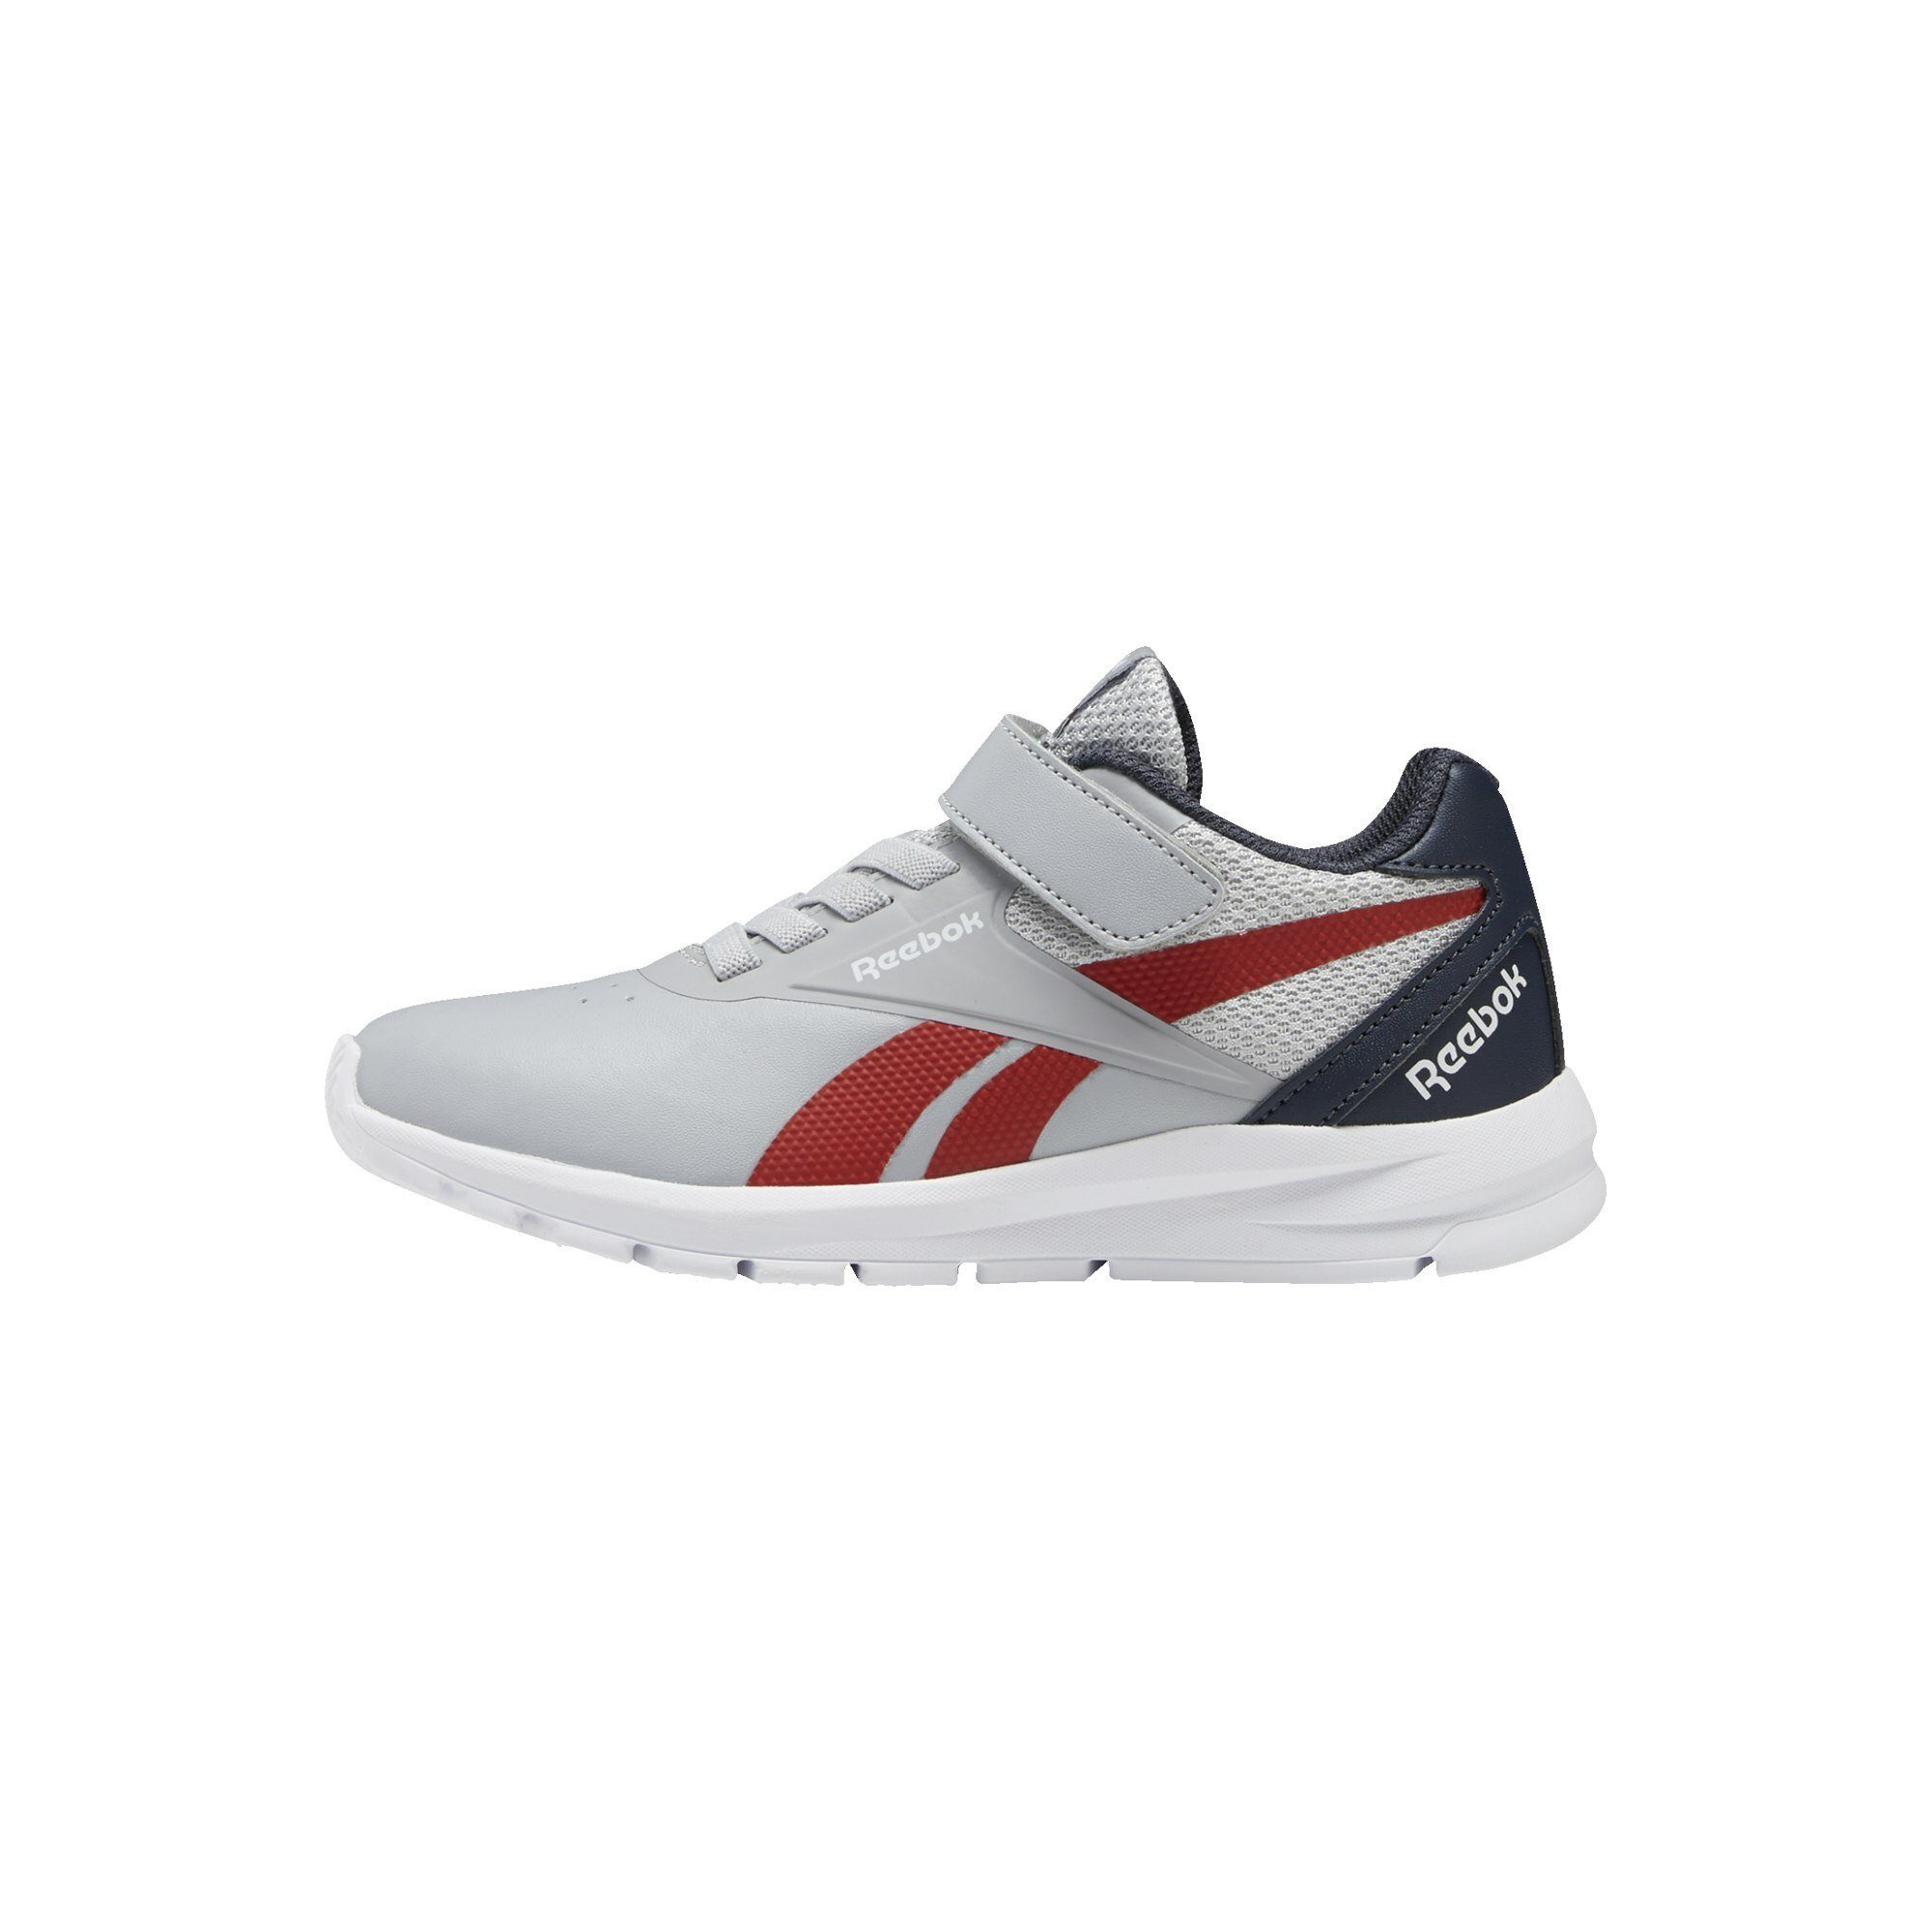 Reebok »Reebok Rush Runner 2.0 Shoes« Trainingsschuh online